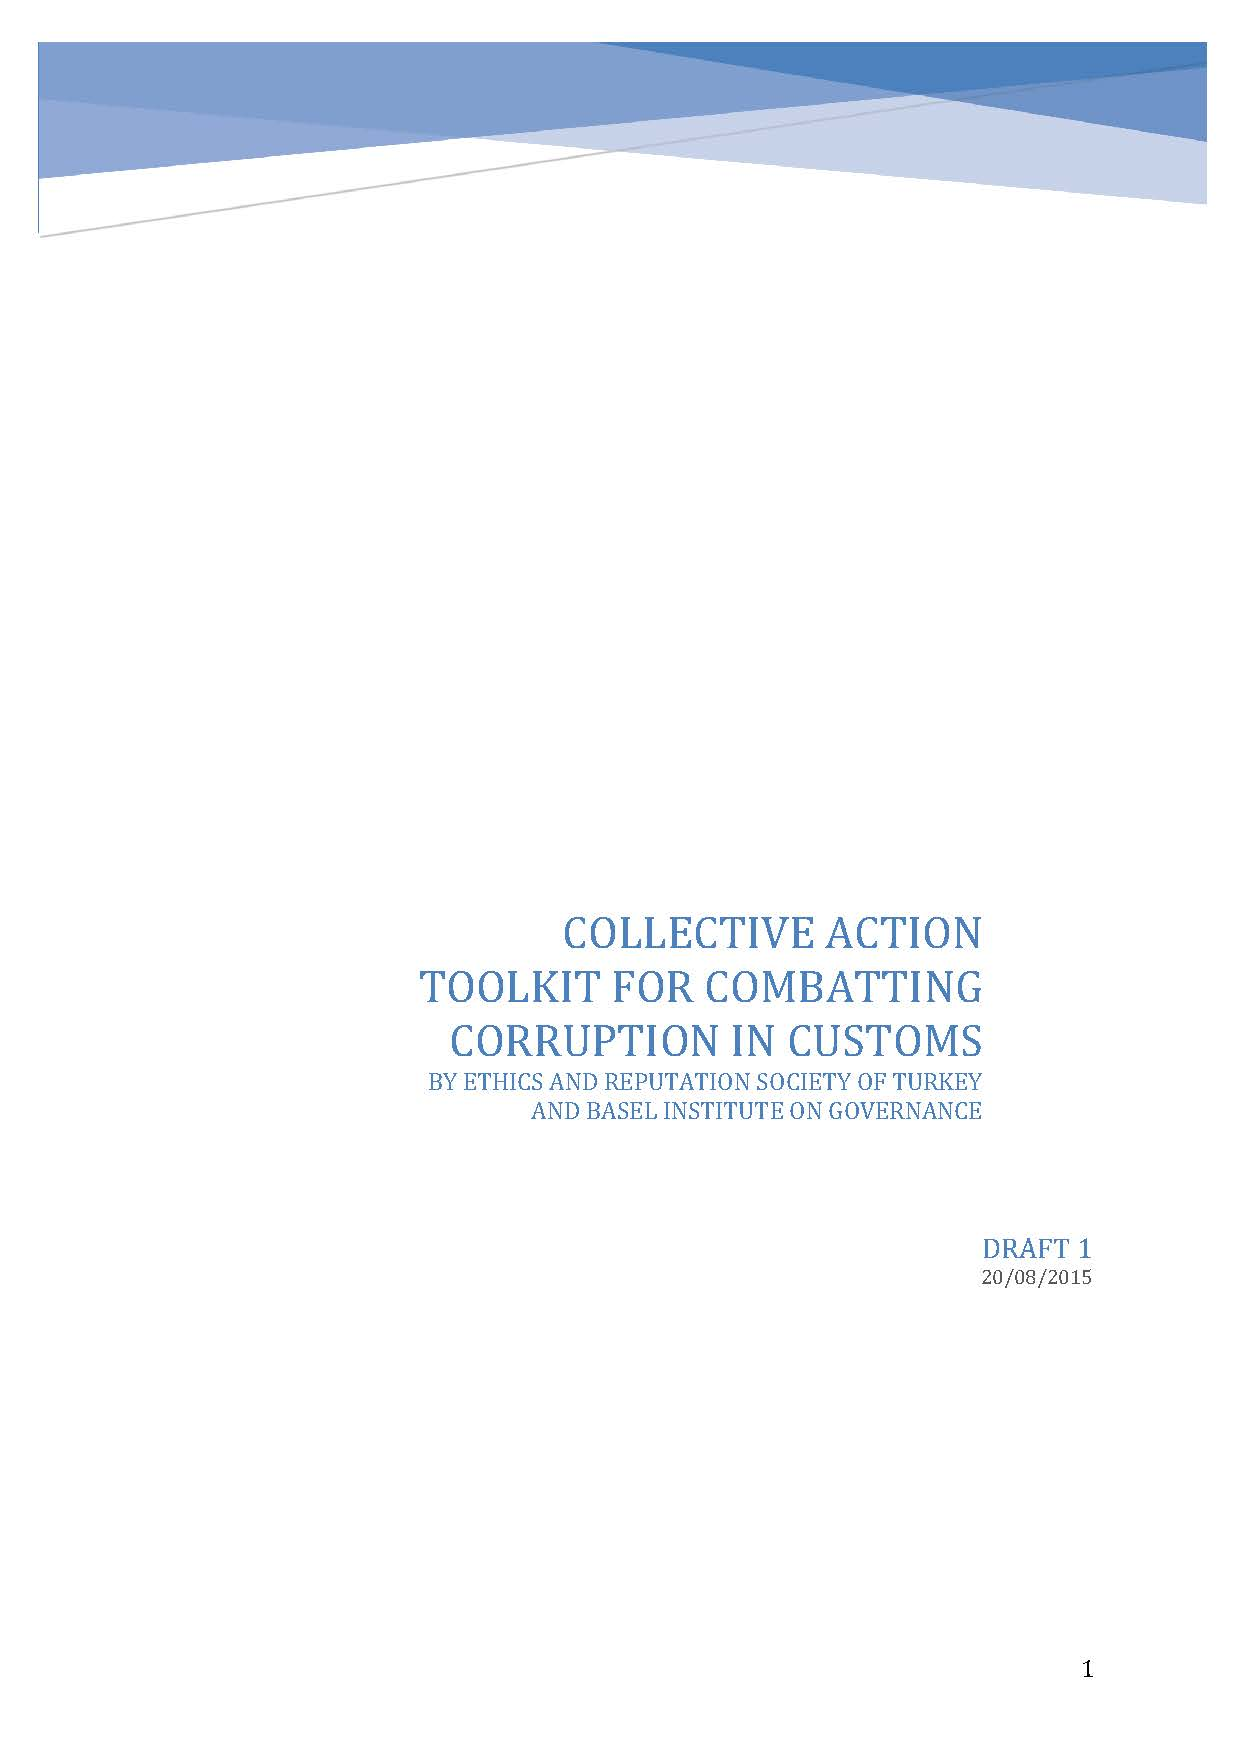 Pages from Collective Action Toolkit For Combating Corruption in Customs.jpg